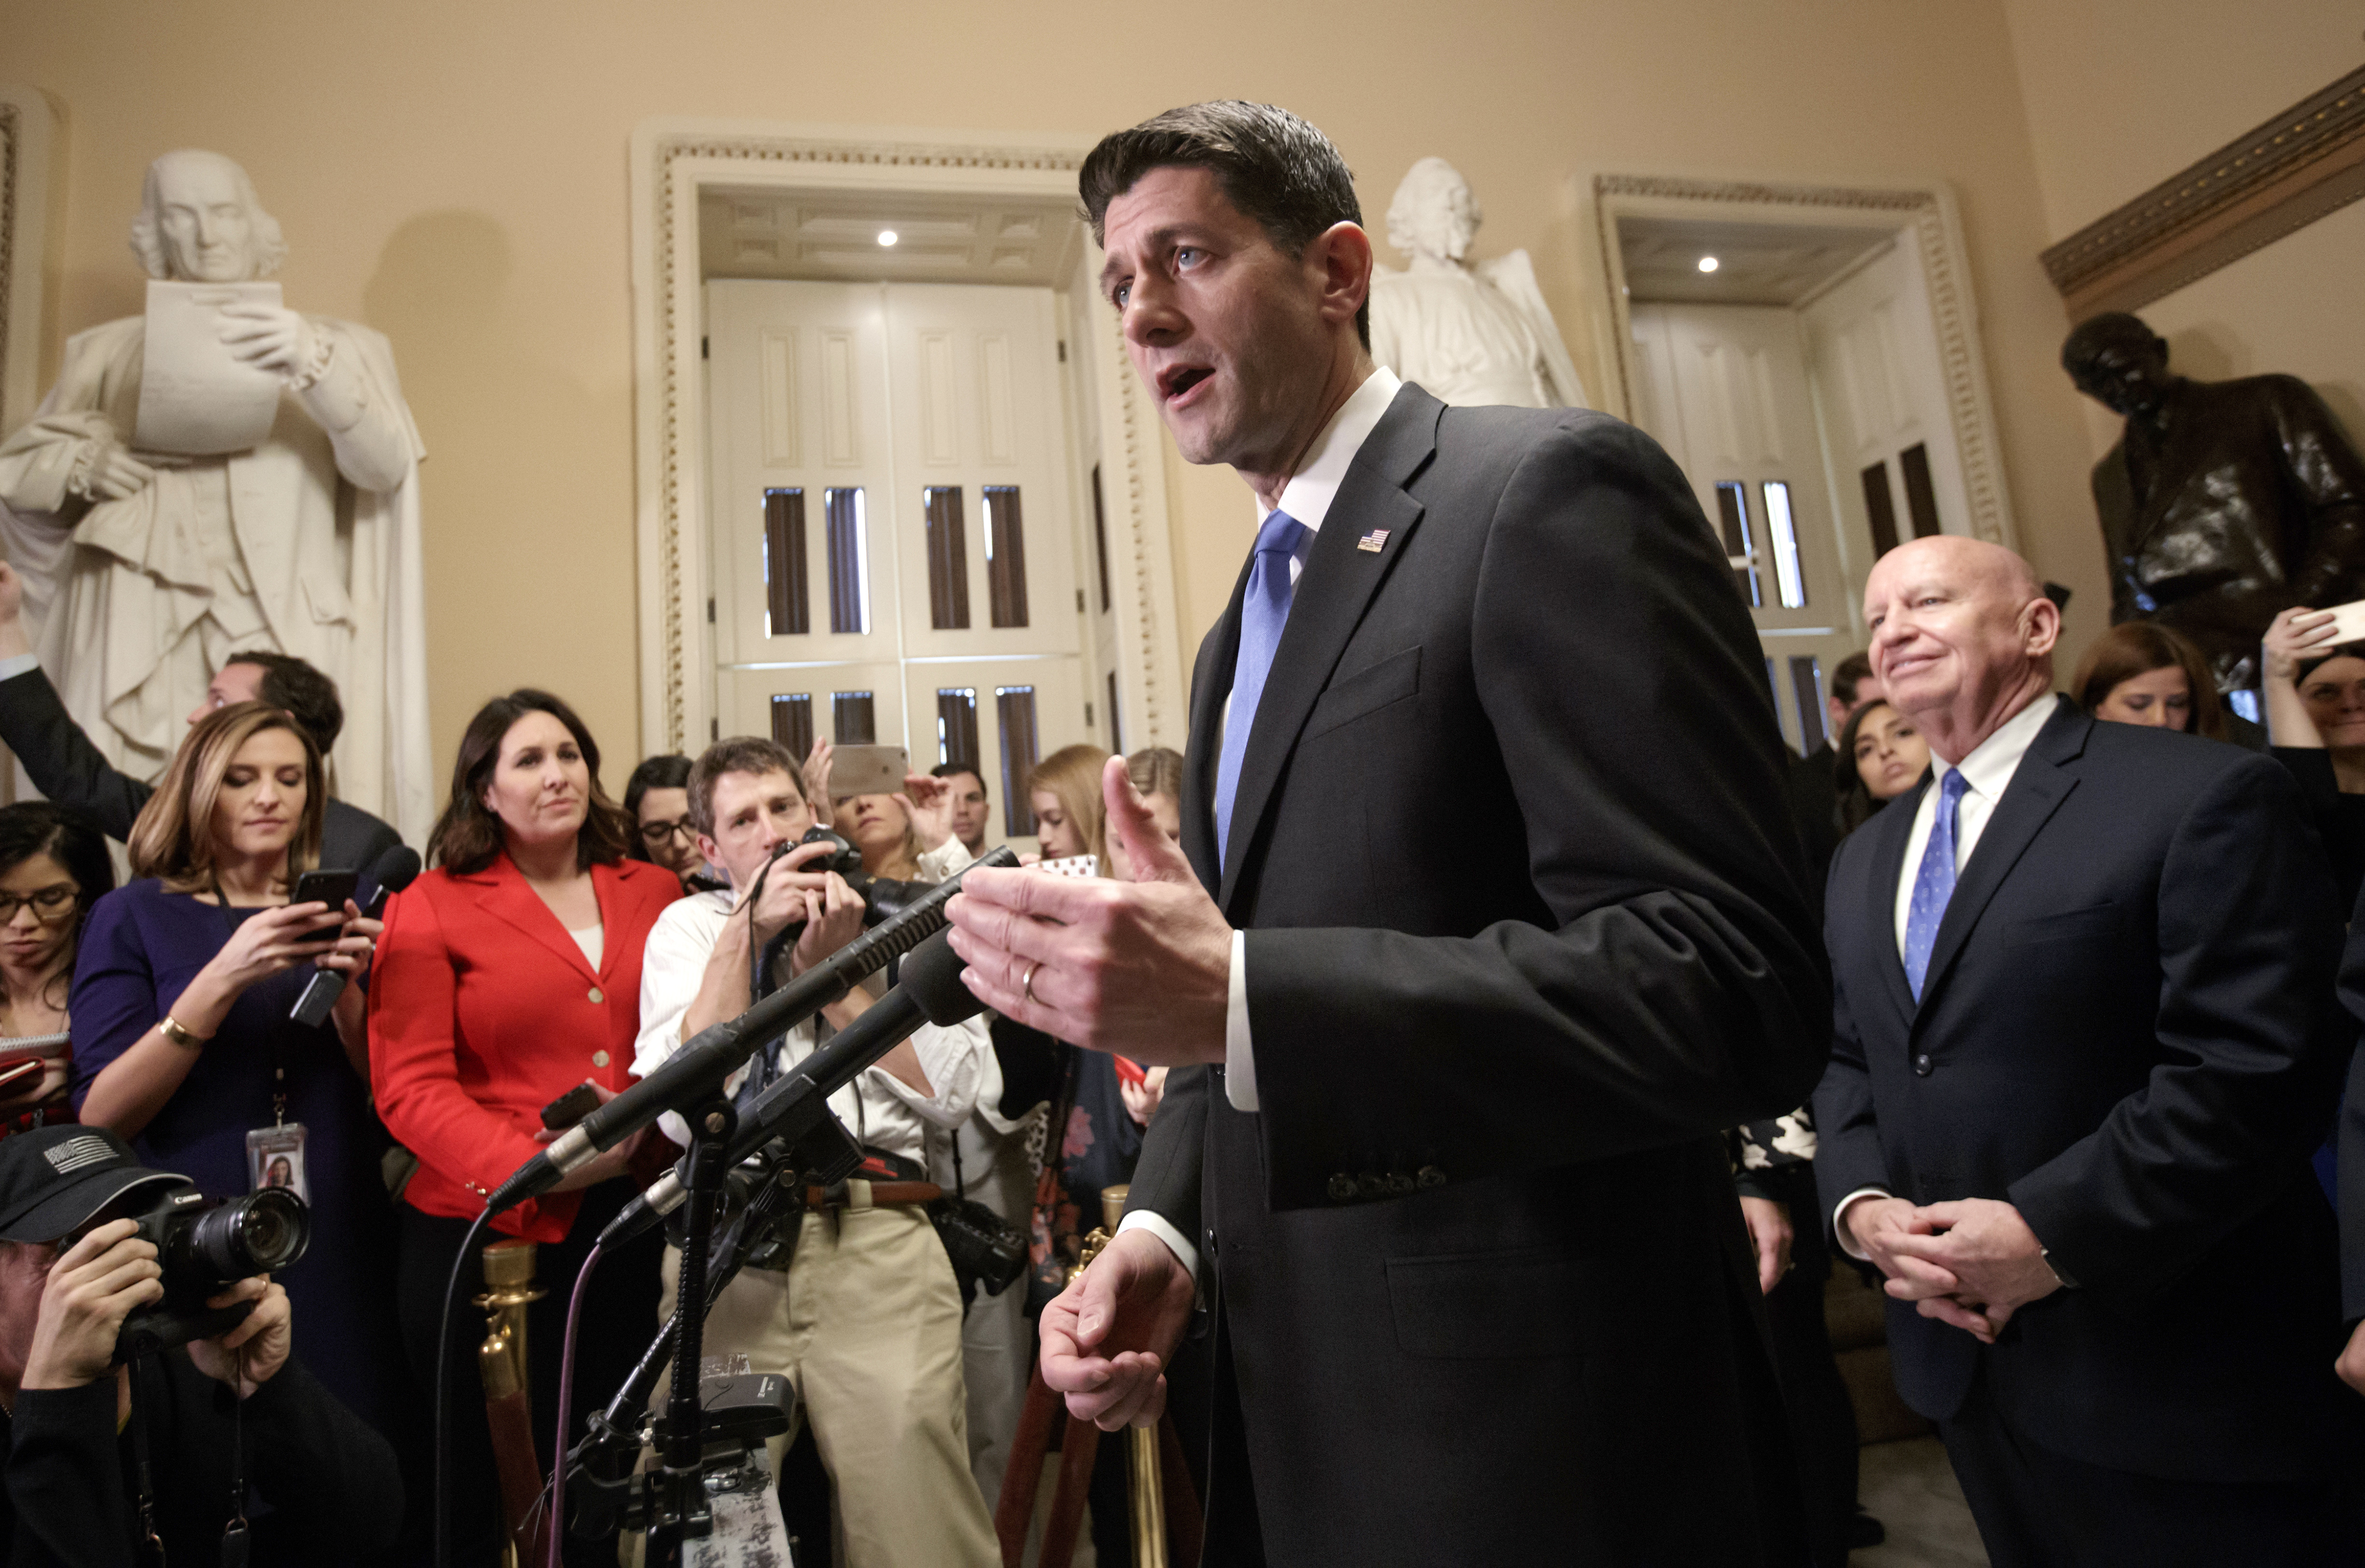 Speaker of the House Paul Ryan, R-Wis., joined at right by House Ways and Means Committee Chairman Kevin Brady, R-Texas, meets reporters just after passing the Republican tax reform bill in the House of Representatives, on Capitol Hill, in Washington...